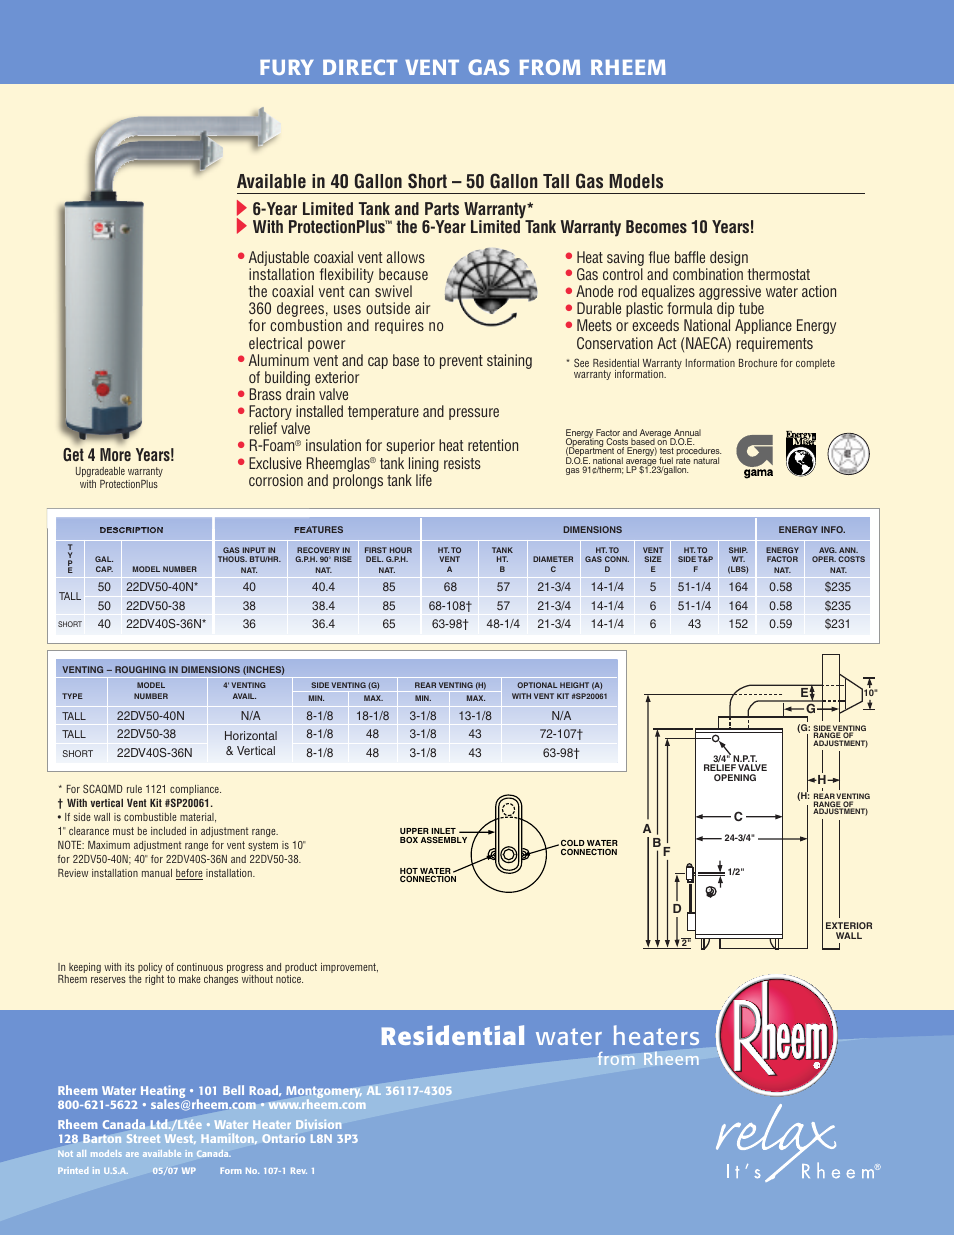 Residential Water Heaters Fury Direct Vent Gas From Rheem